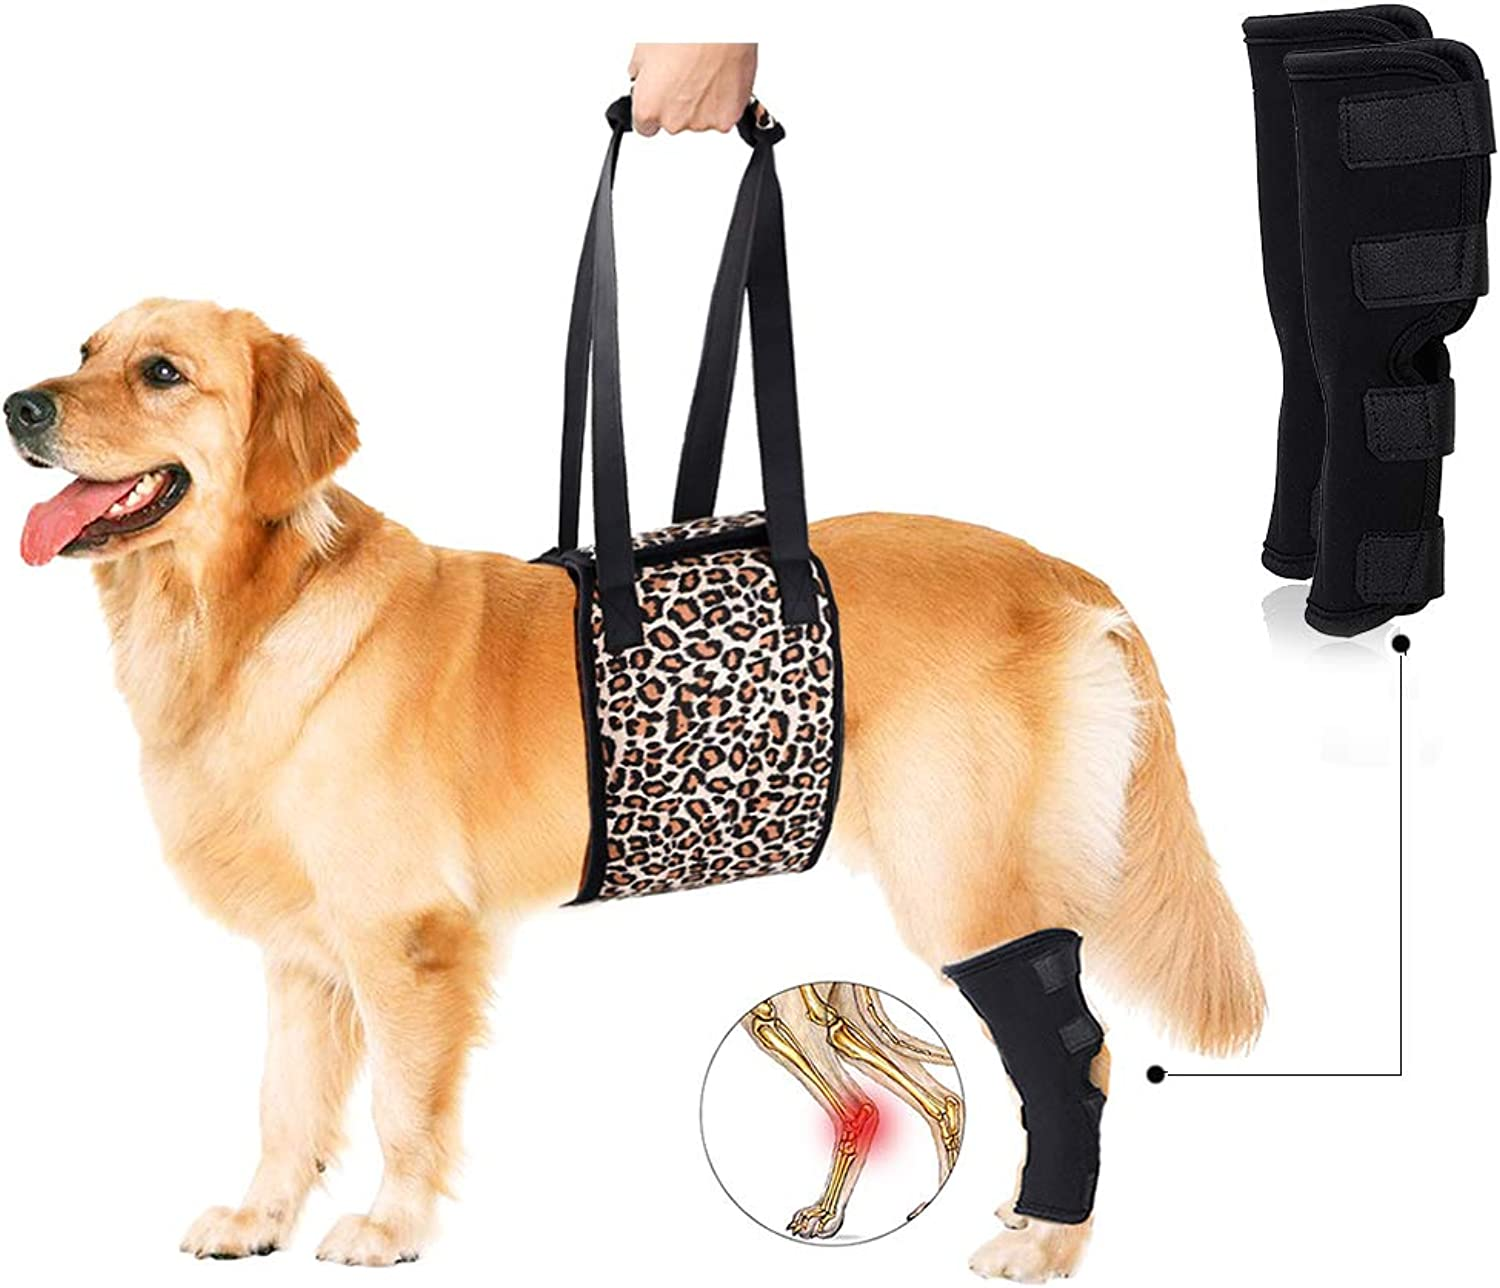 Petsidea Dog Lift Harness Sing with 1pc Dog Rear Leg Brace Support Help Old Dogs for Hip dysplasia, Rehabilitation, Joint Injuries (XLarge, Leopard Print)